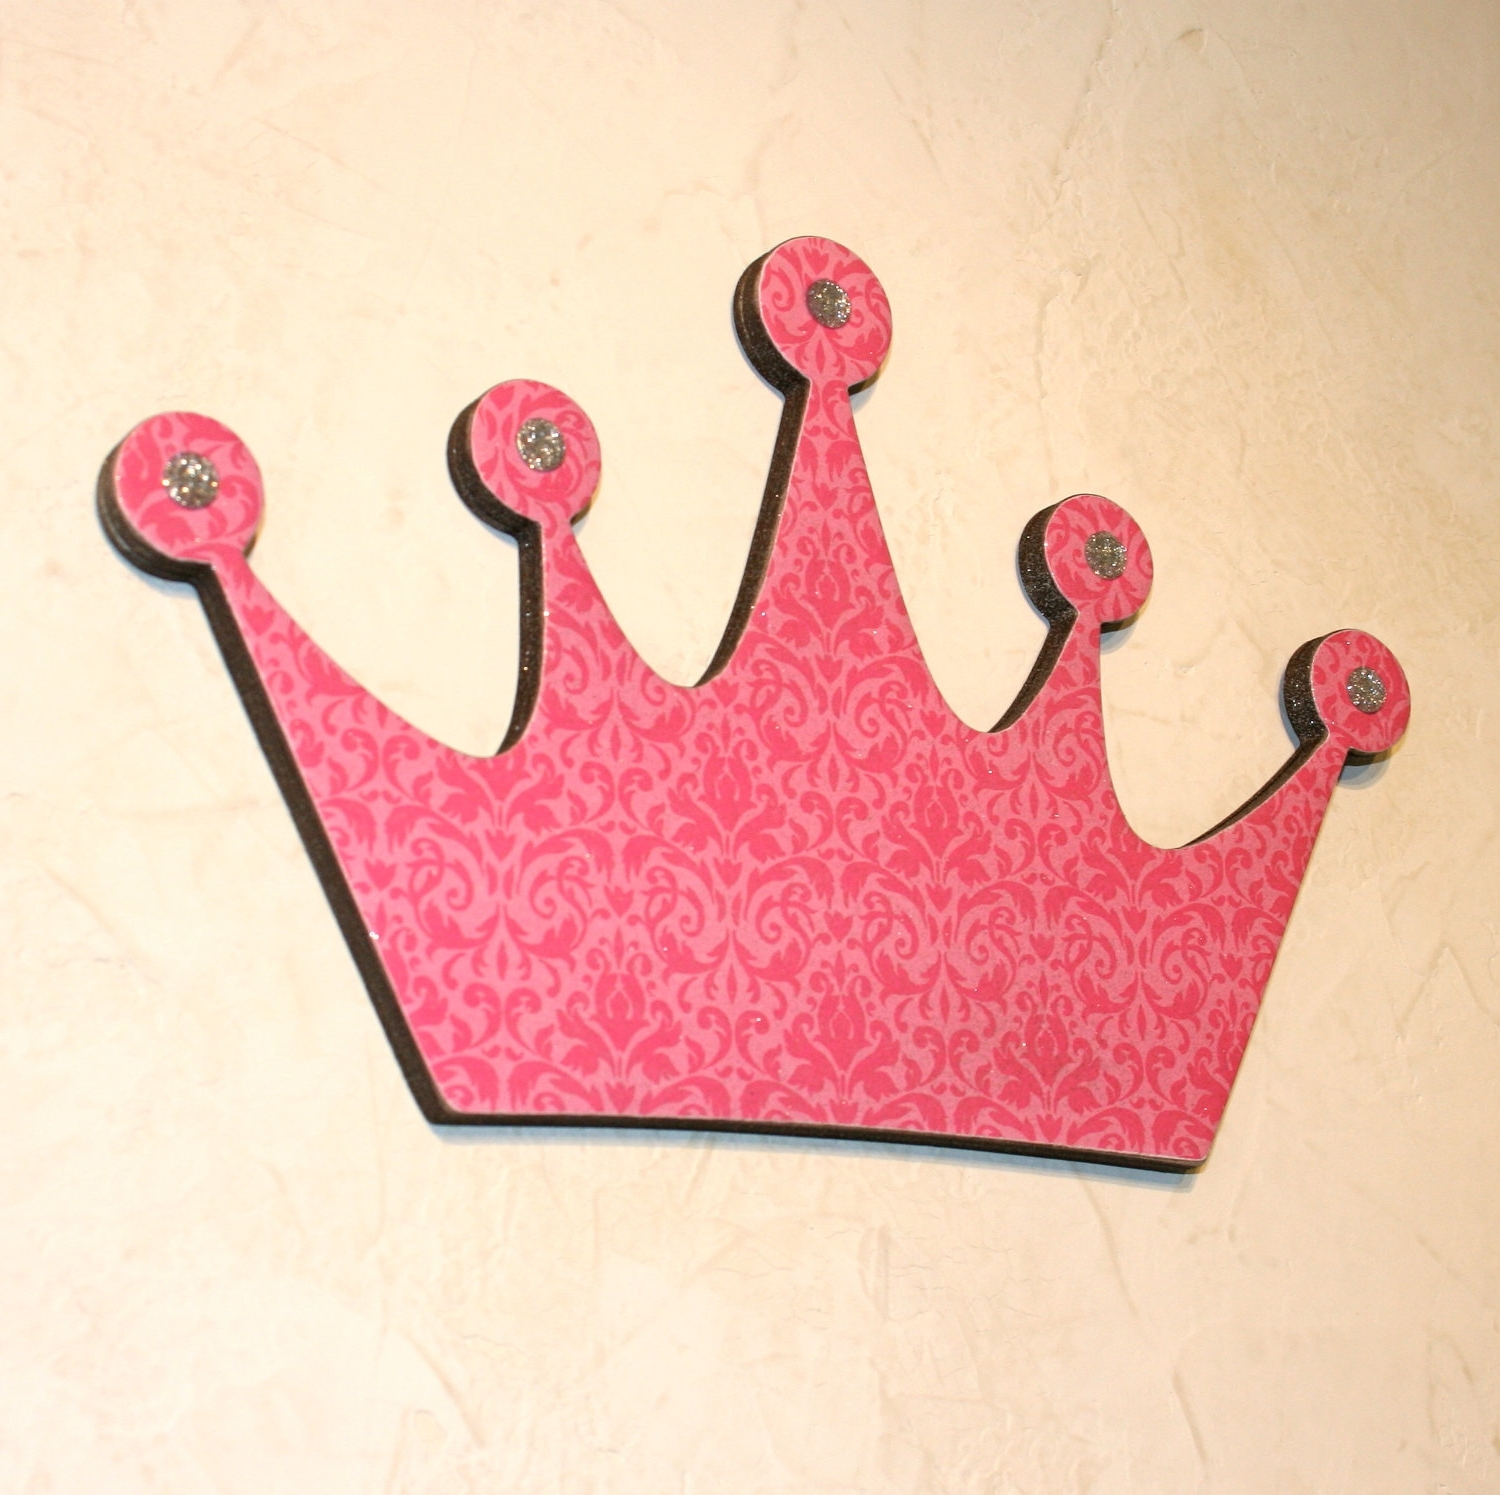 Most Current Crown Princess Wall Decor Dark : Crown Princess Wall Decor – Home Throughout 3D Princess Crown Wall Art Decor (View 11 of 15)